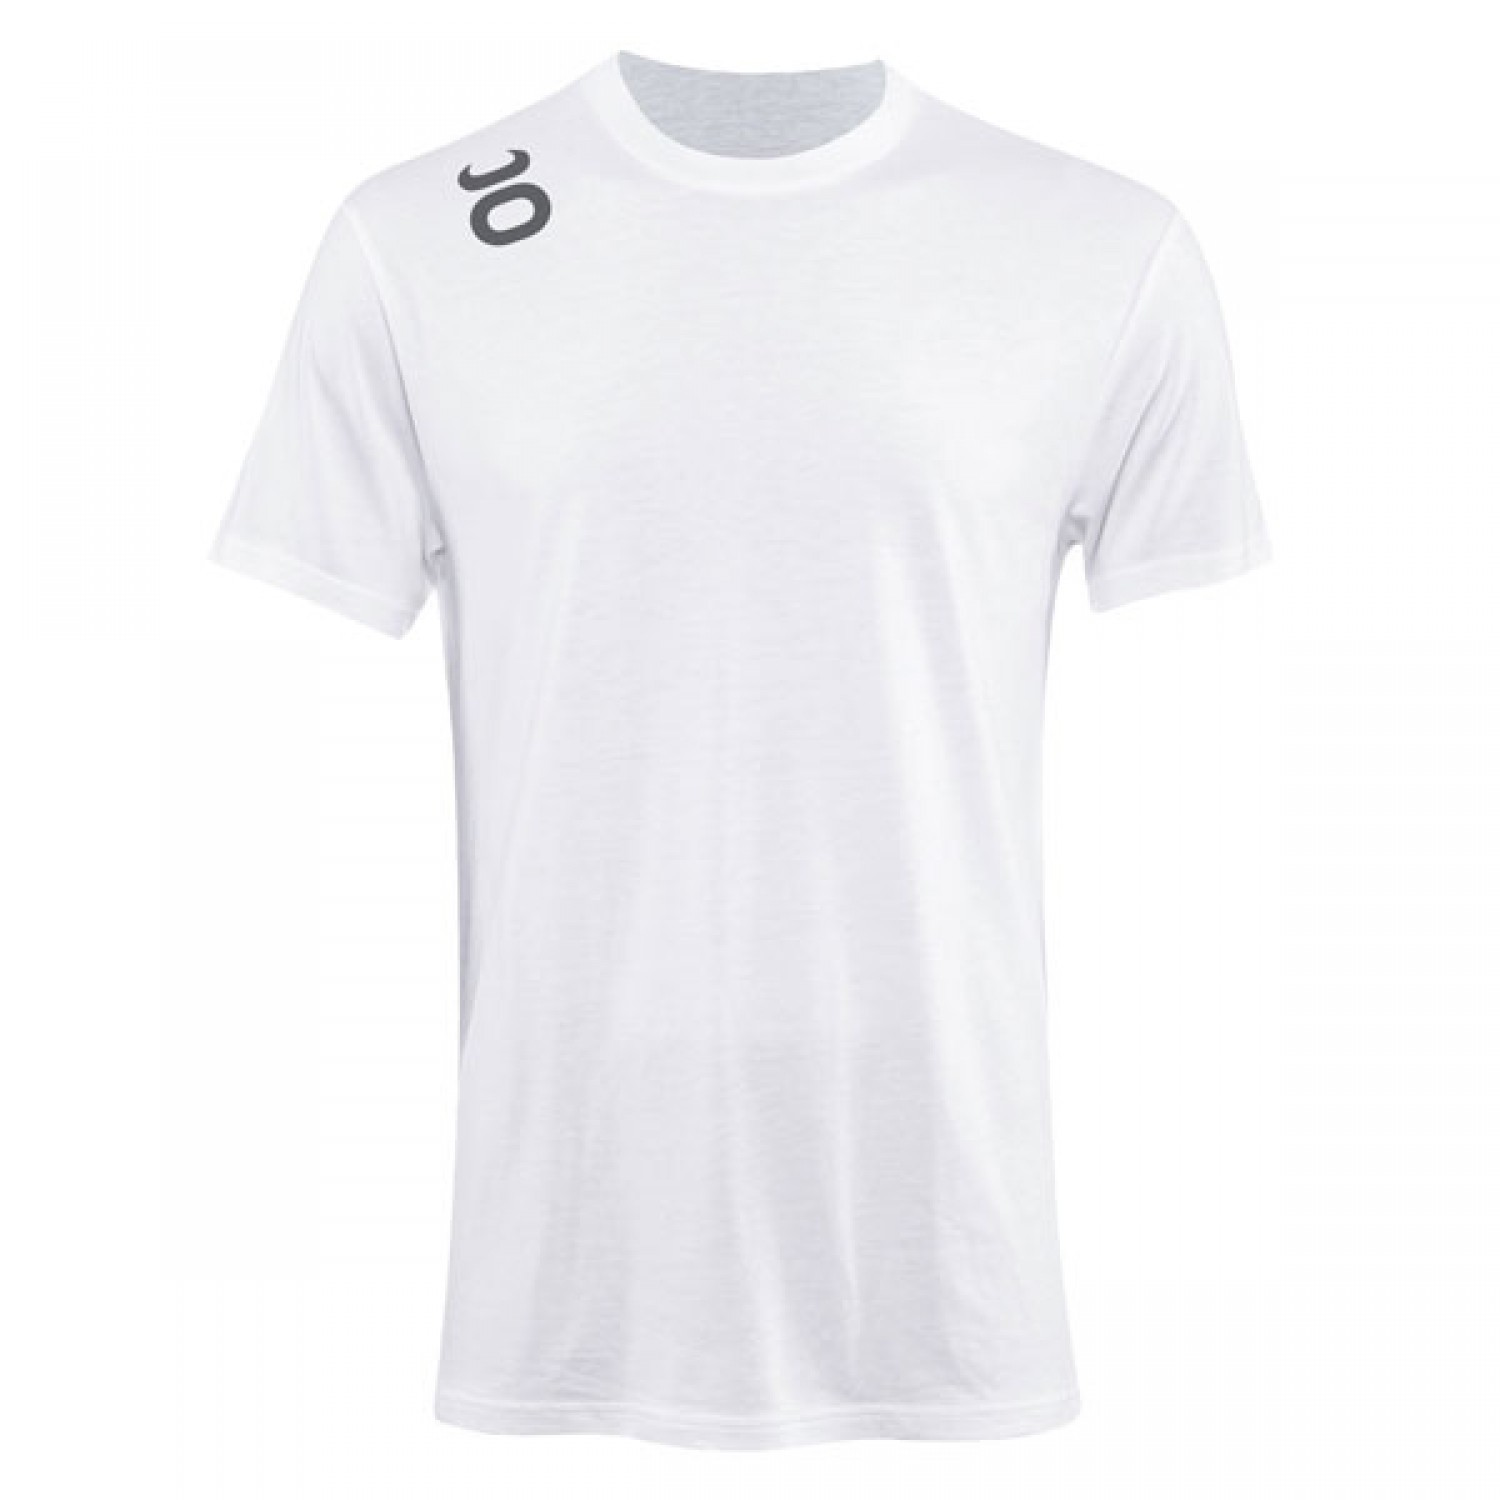 Tenacity Performance Bamboo Crew (White)